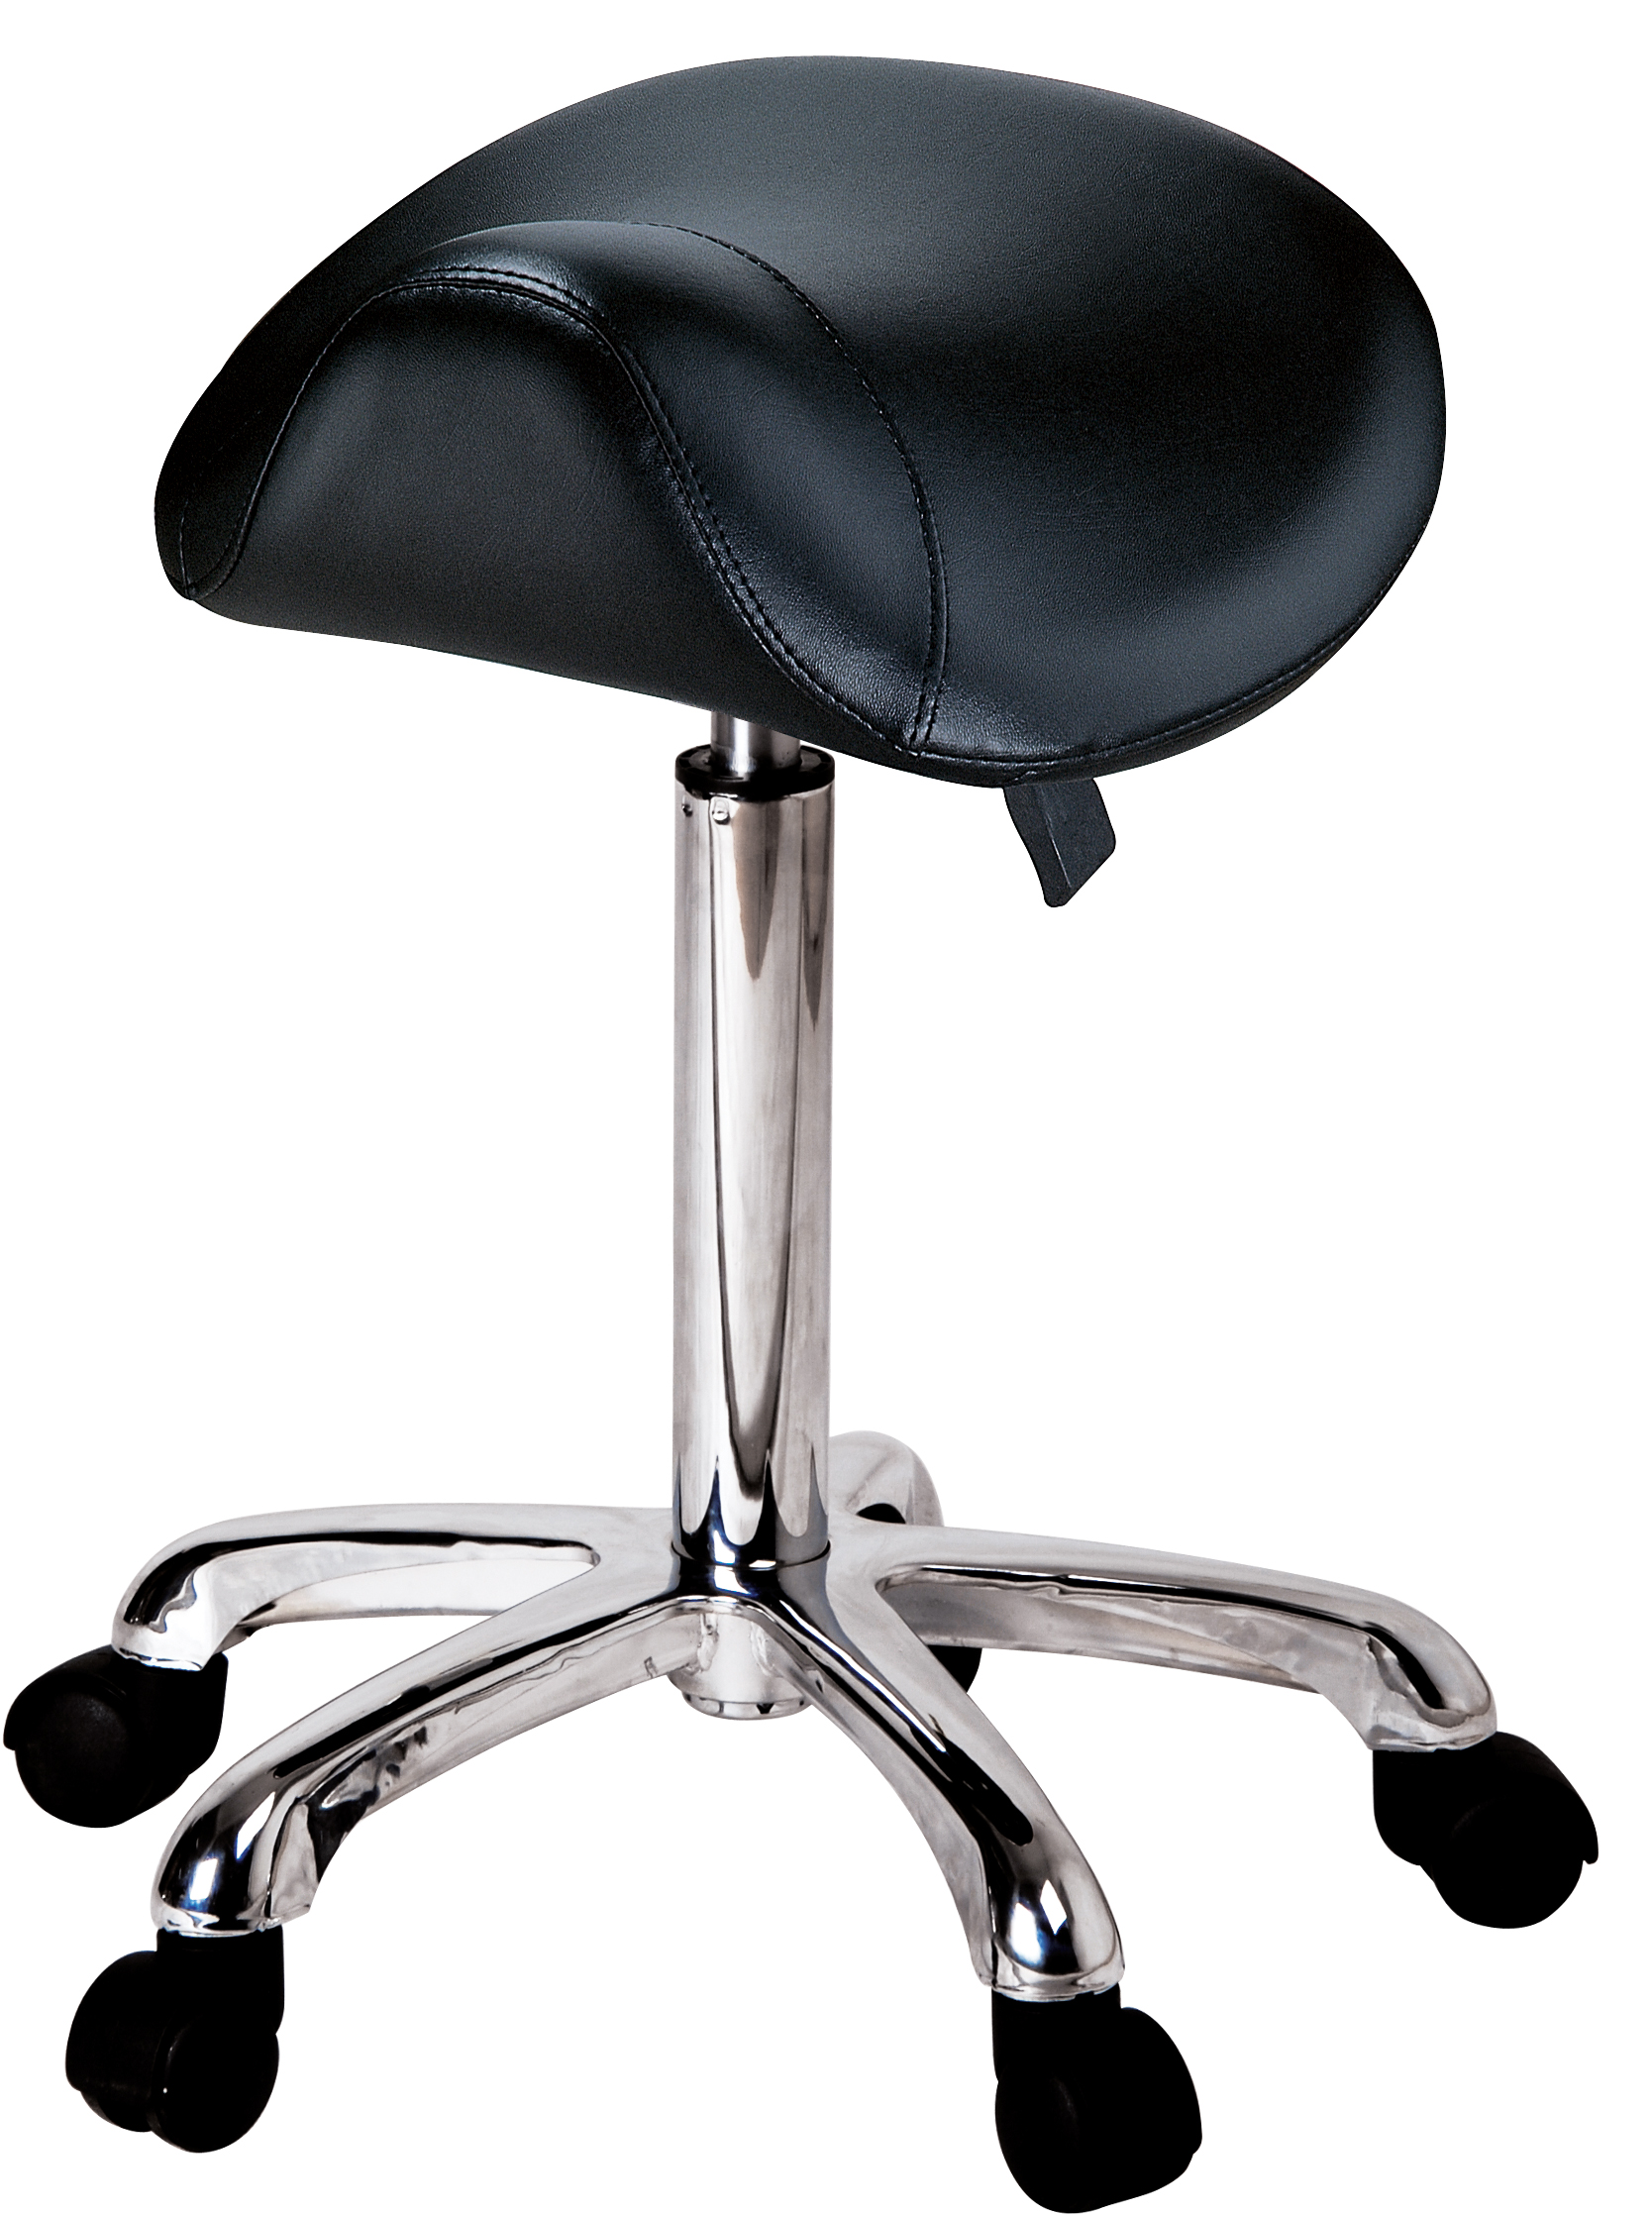 USA Salon & Spa Saddle Black